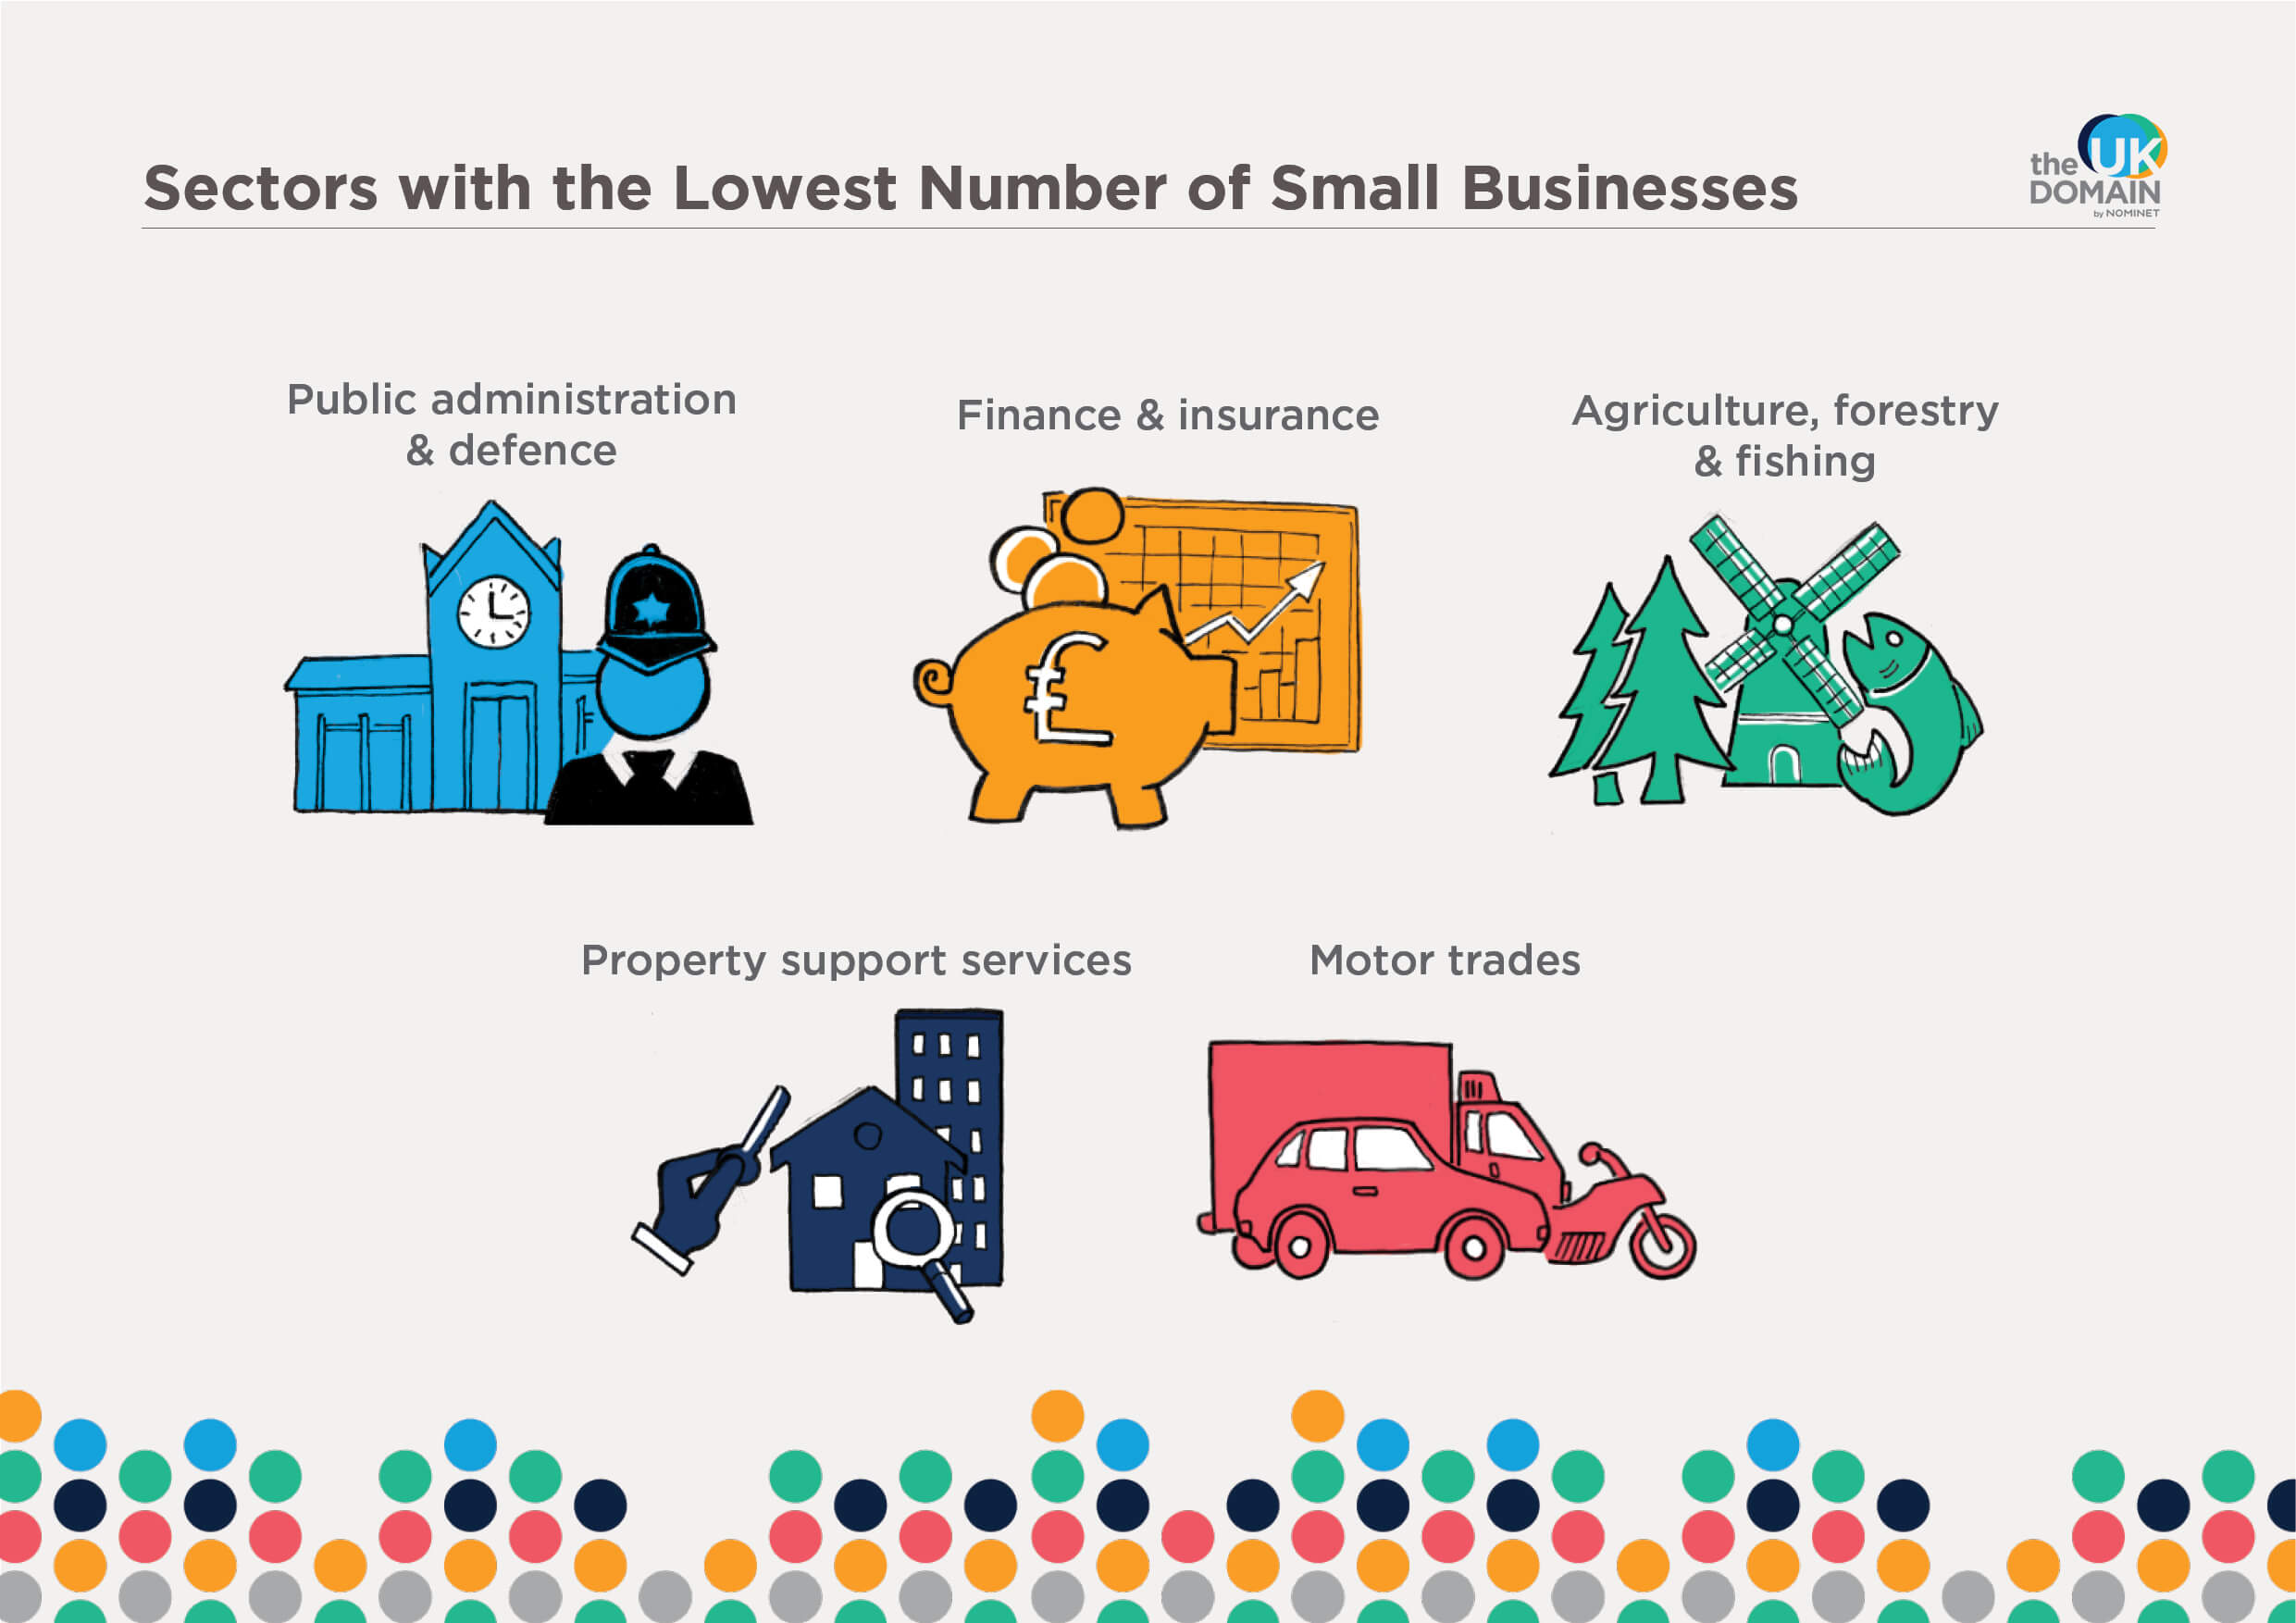 Sectors with the lowest number of small businesses